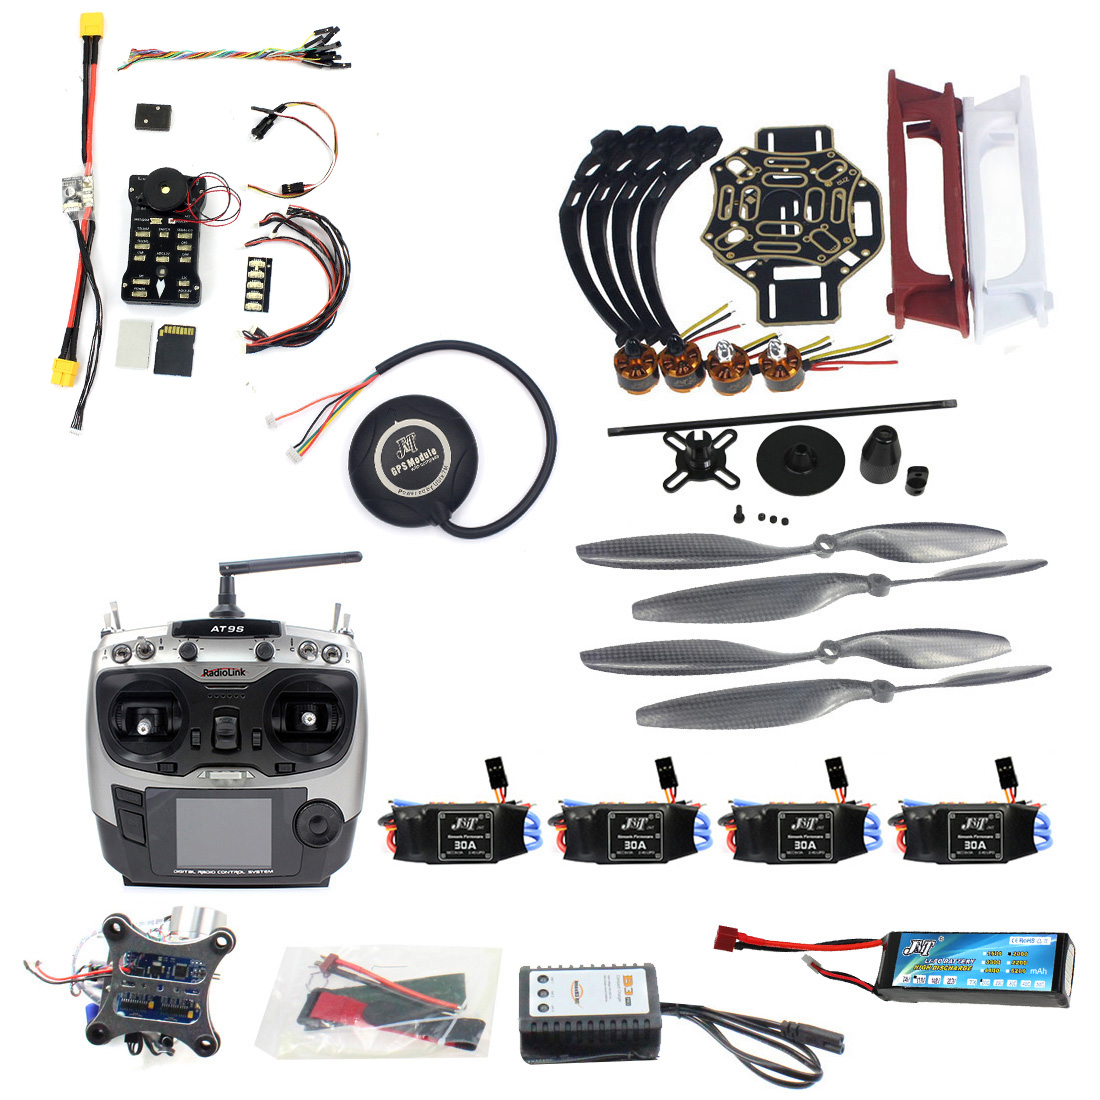 DIY RC FPV Drone Kit 4 axis Quadcopter with F450 Frame PIXHAWK PXI PX4 Flight Control